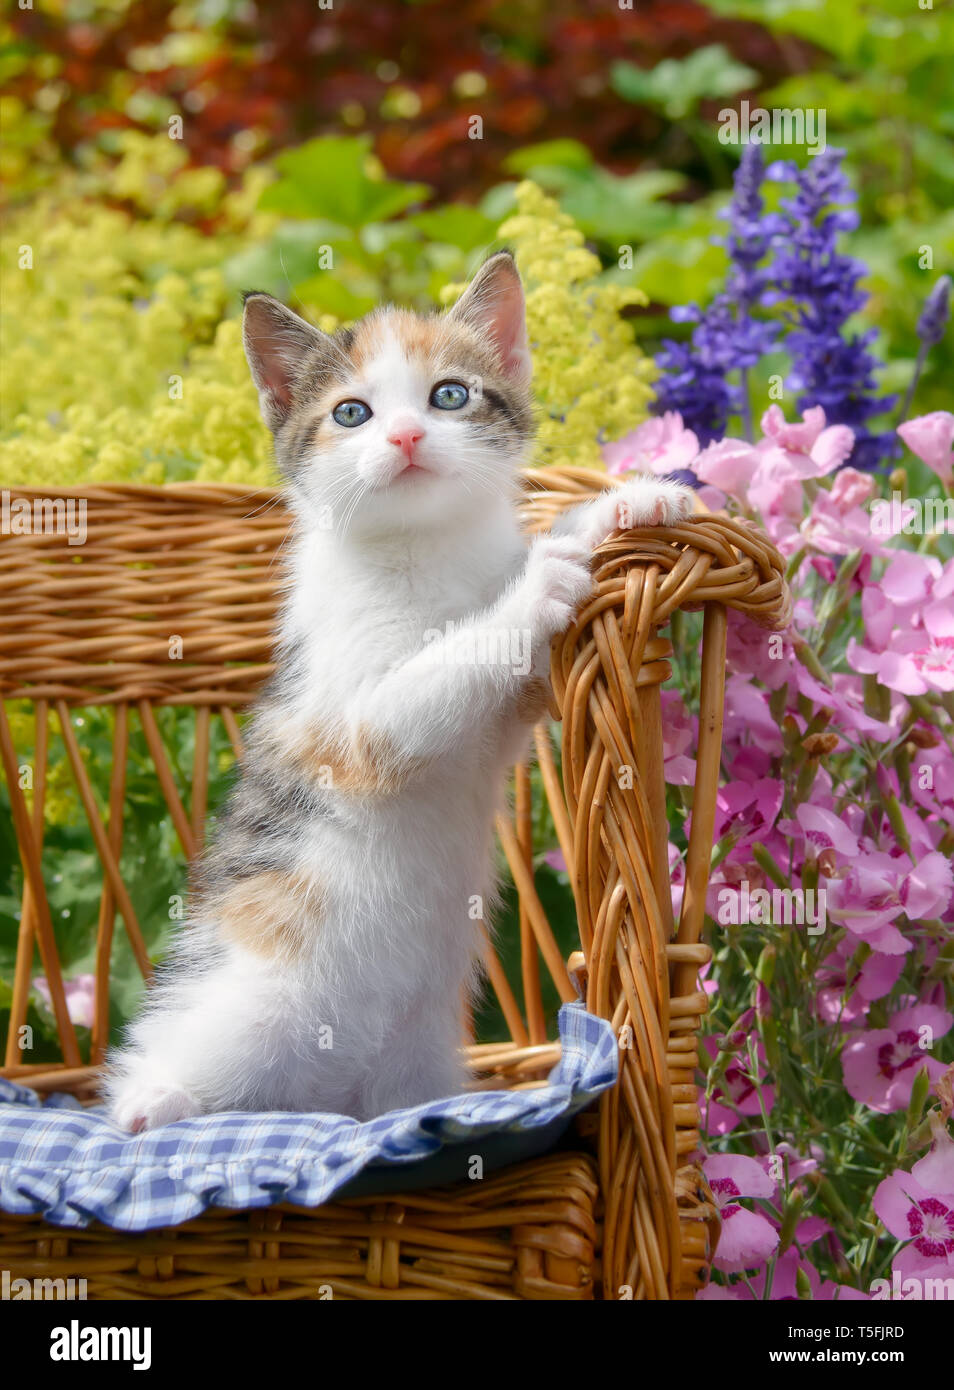 Cute Baby Cat Kitten White With Tortoiseshell Patches With Beautiful Blue Eyes Sitting Upright In A Small Wicker Chair In A Colorful Flowering Garden Stock Photo Alamy